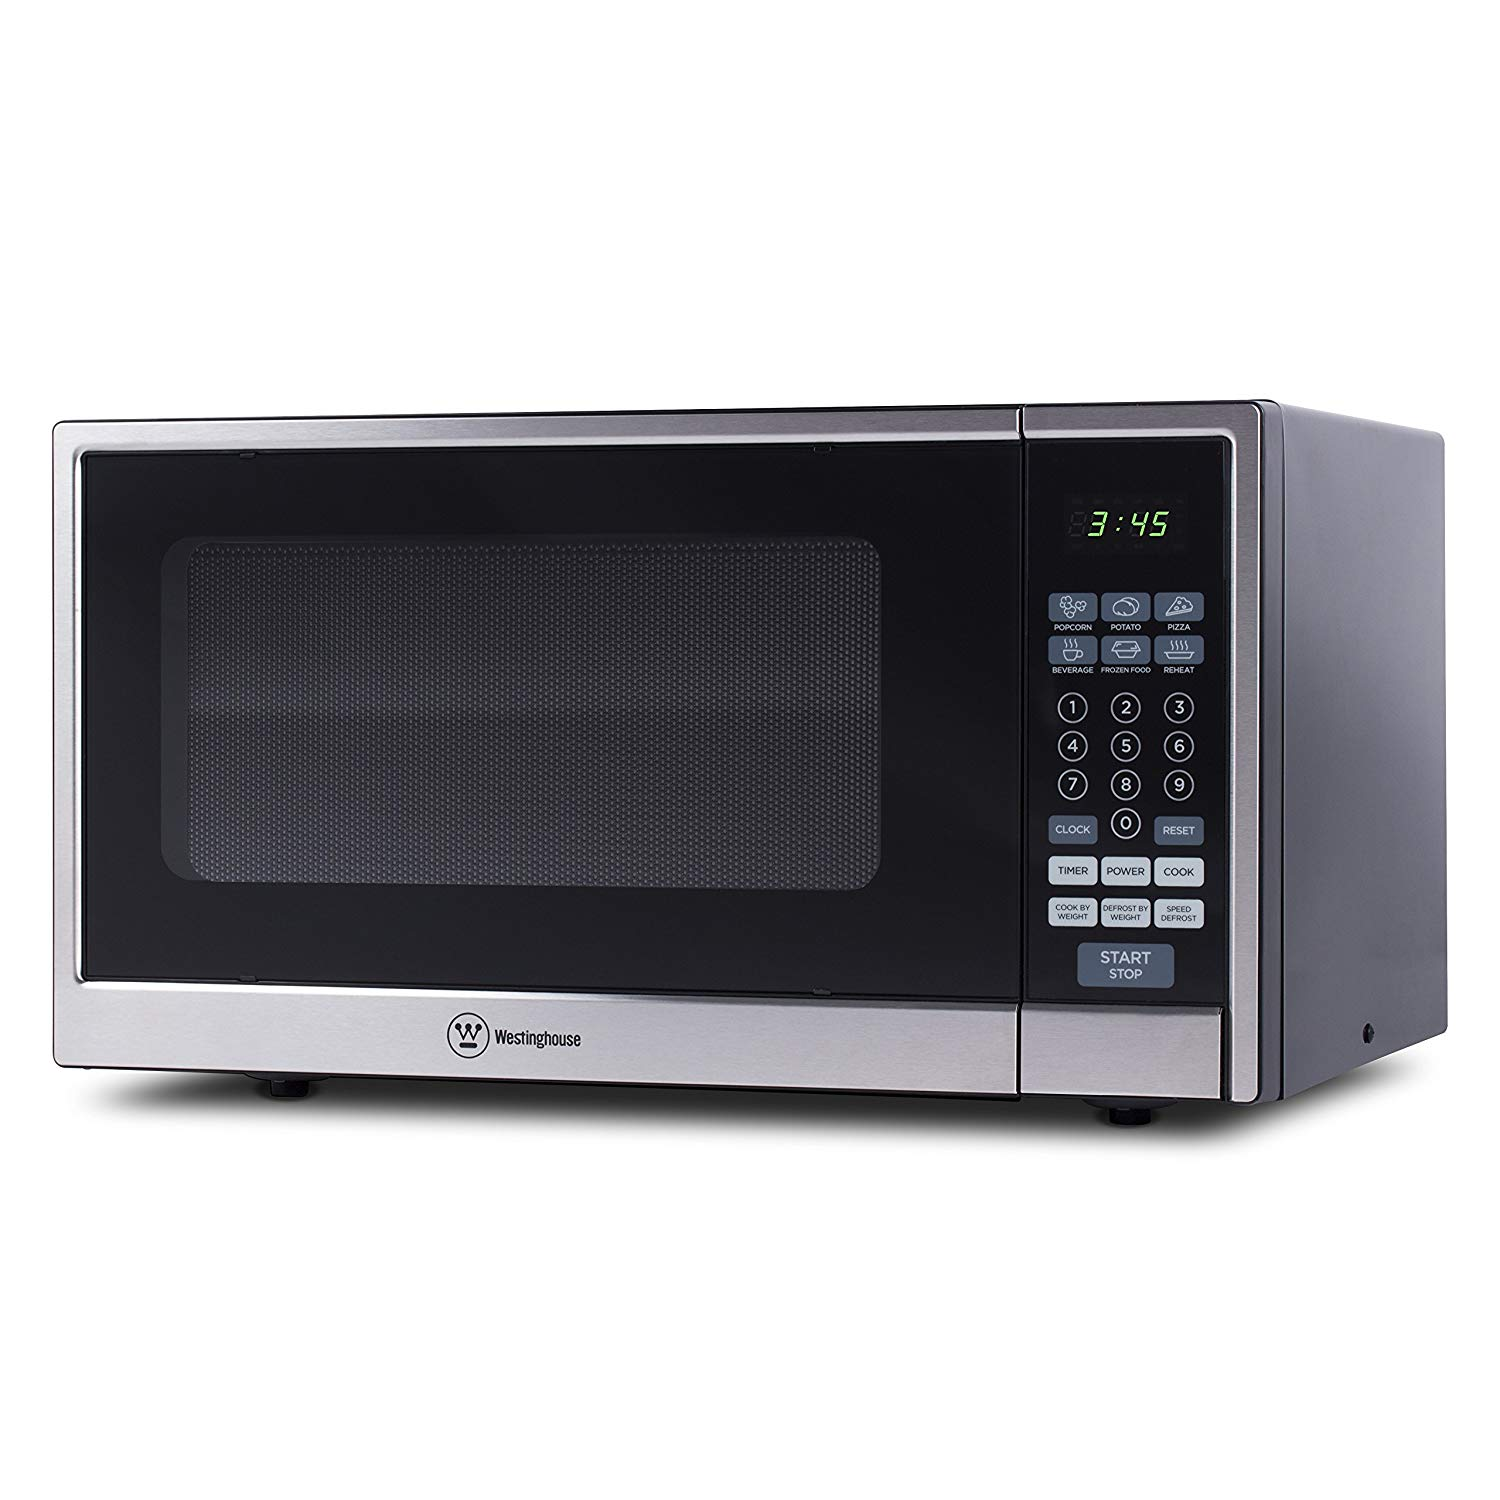 Westinghouse, WCM11100SS, Countertop Microwave Oven